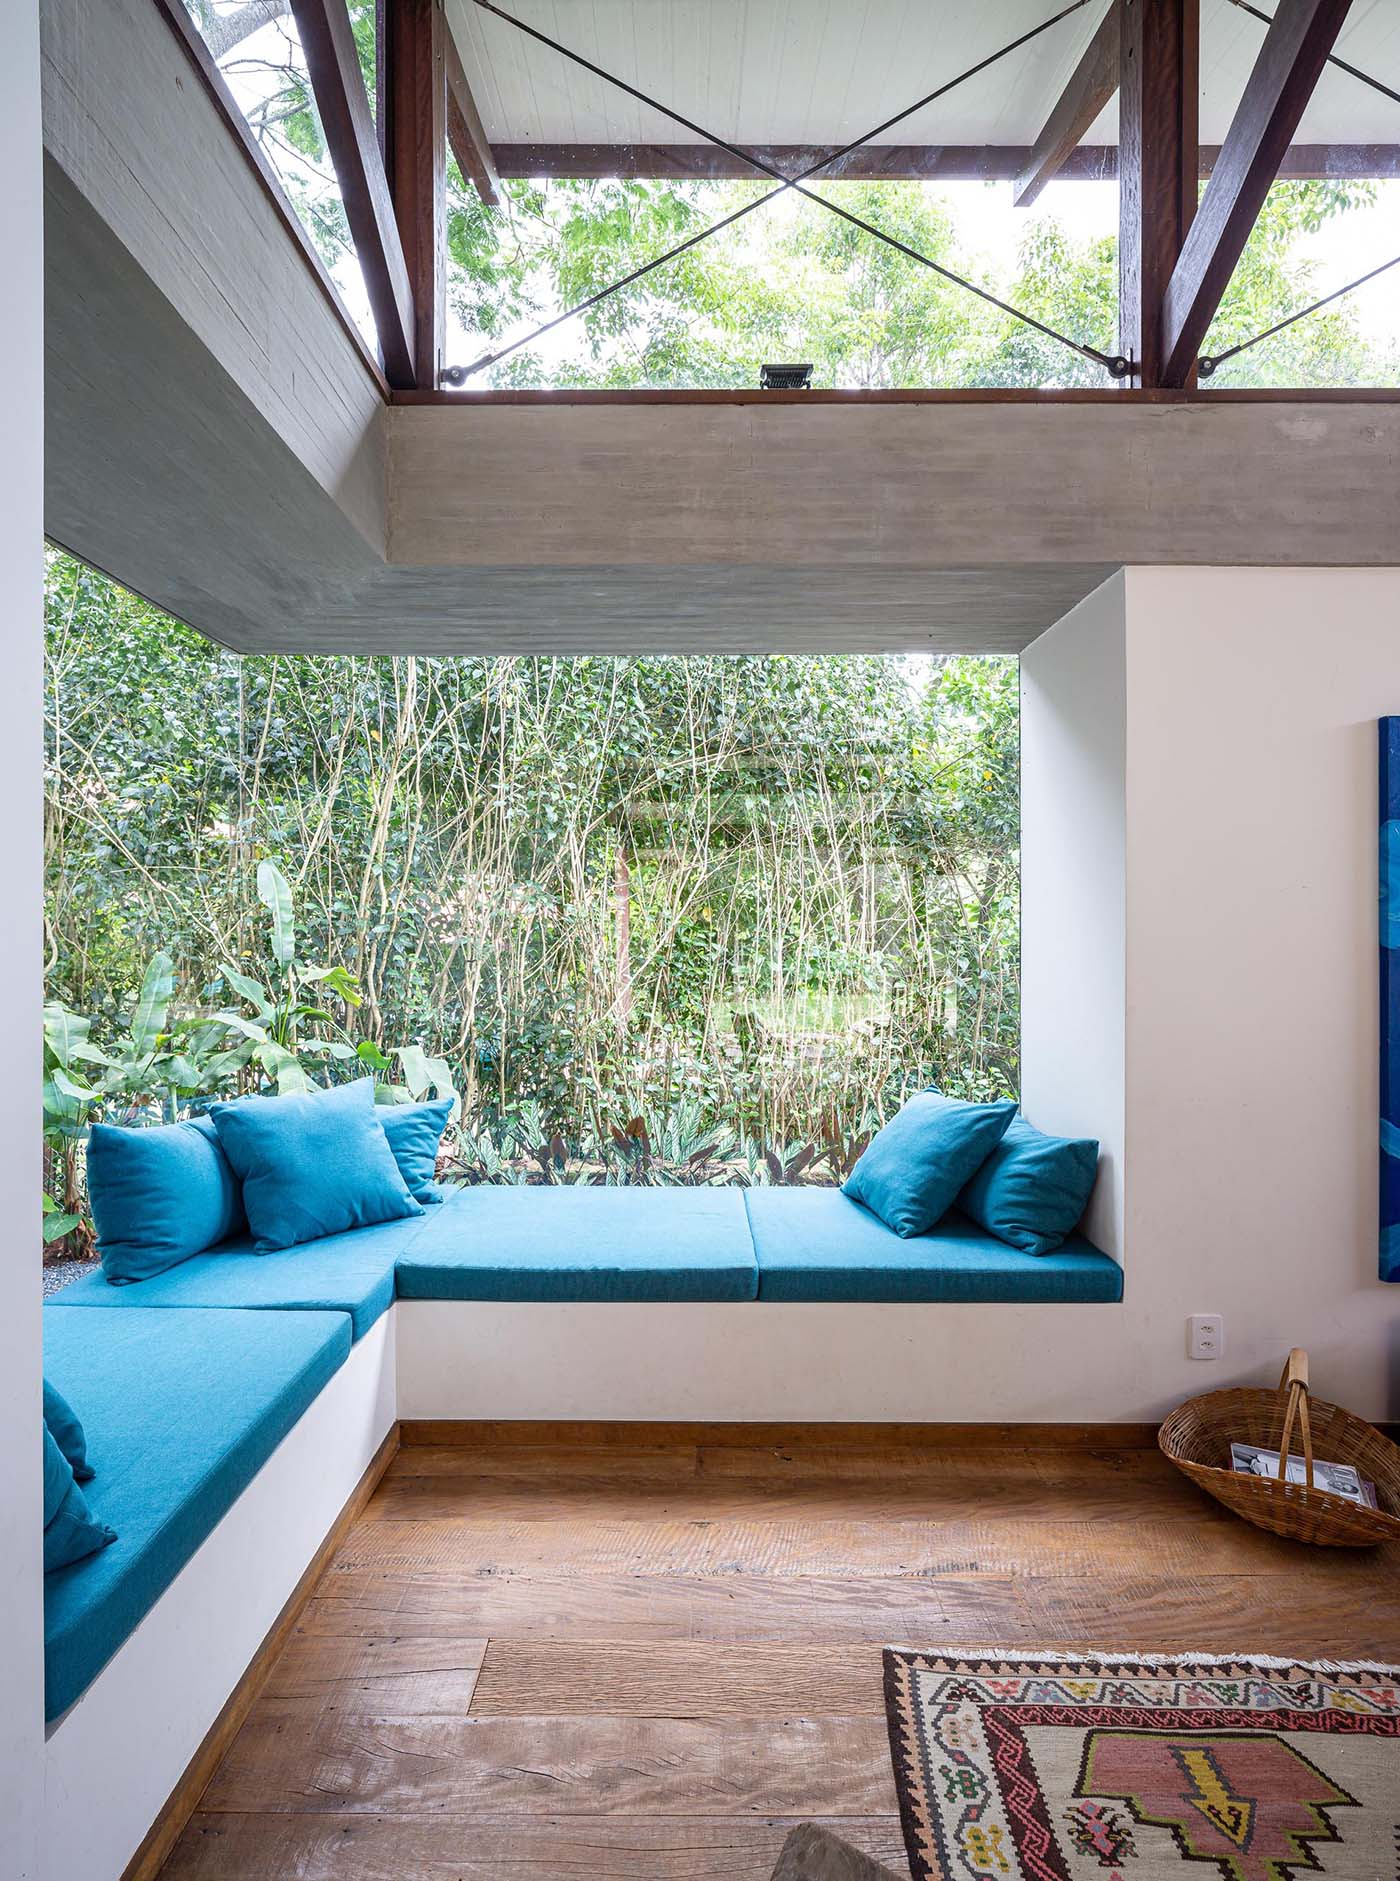 The bright blue upholstered cushions and pillows adds a bright and colorful accent to the room, while the window bench is long enough to accommodate multiple people.